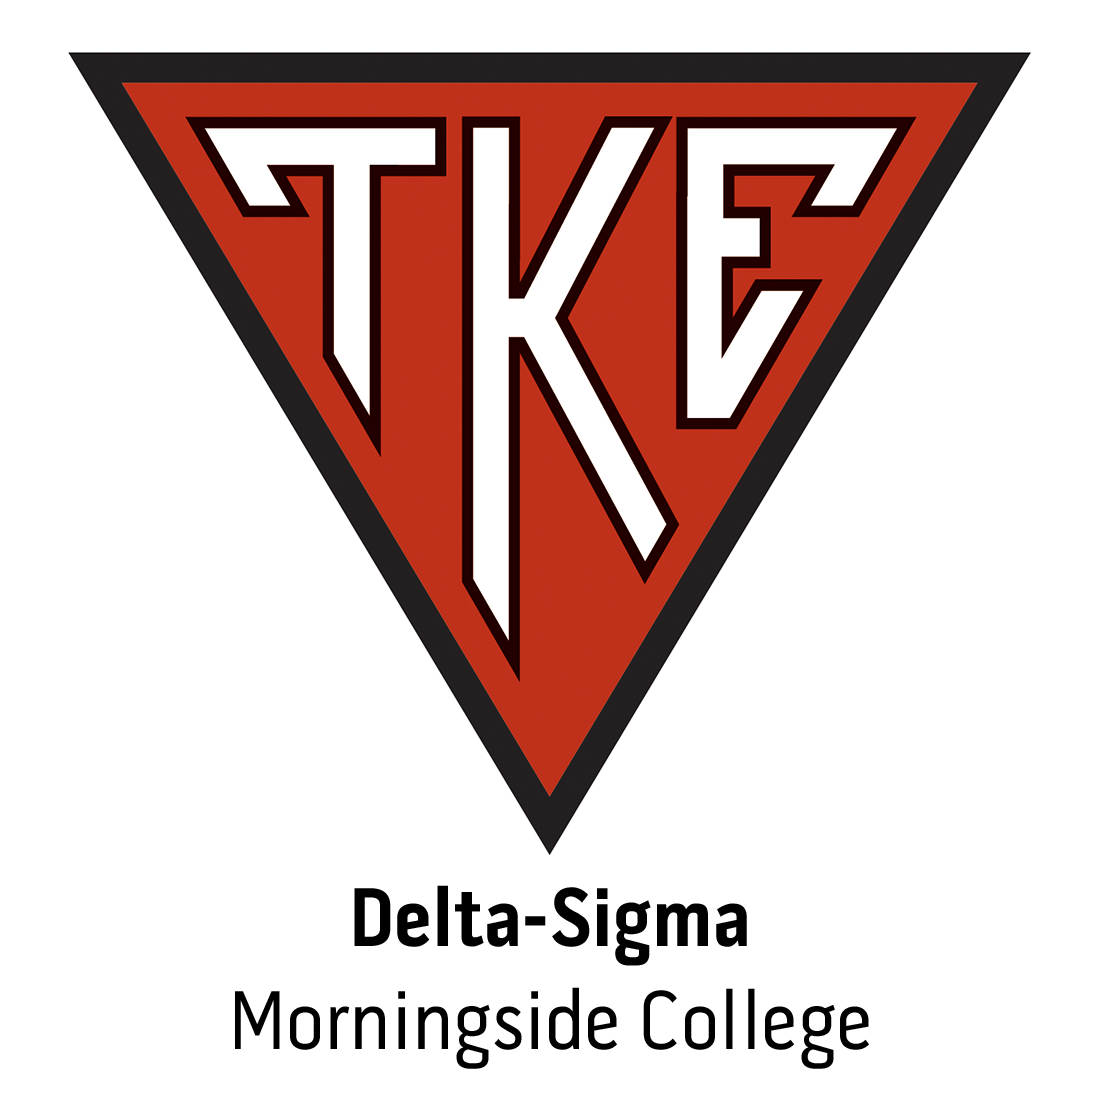 Delta-Sigma Chapter at Morningside College